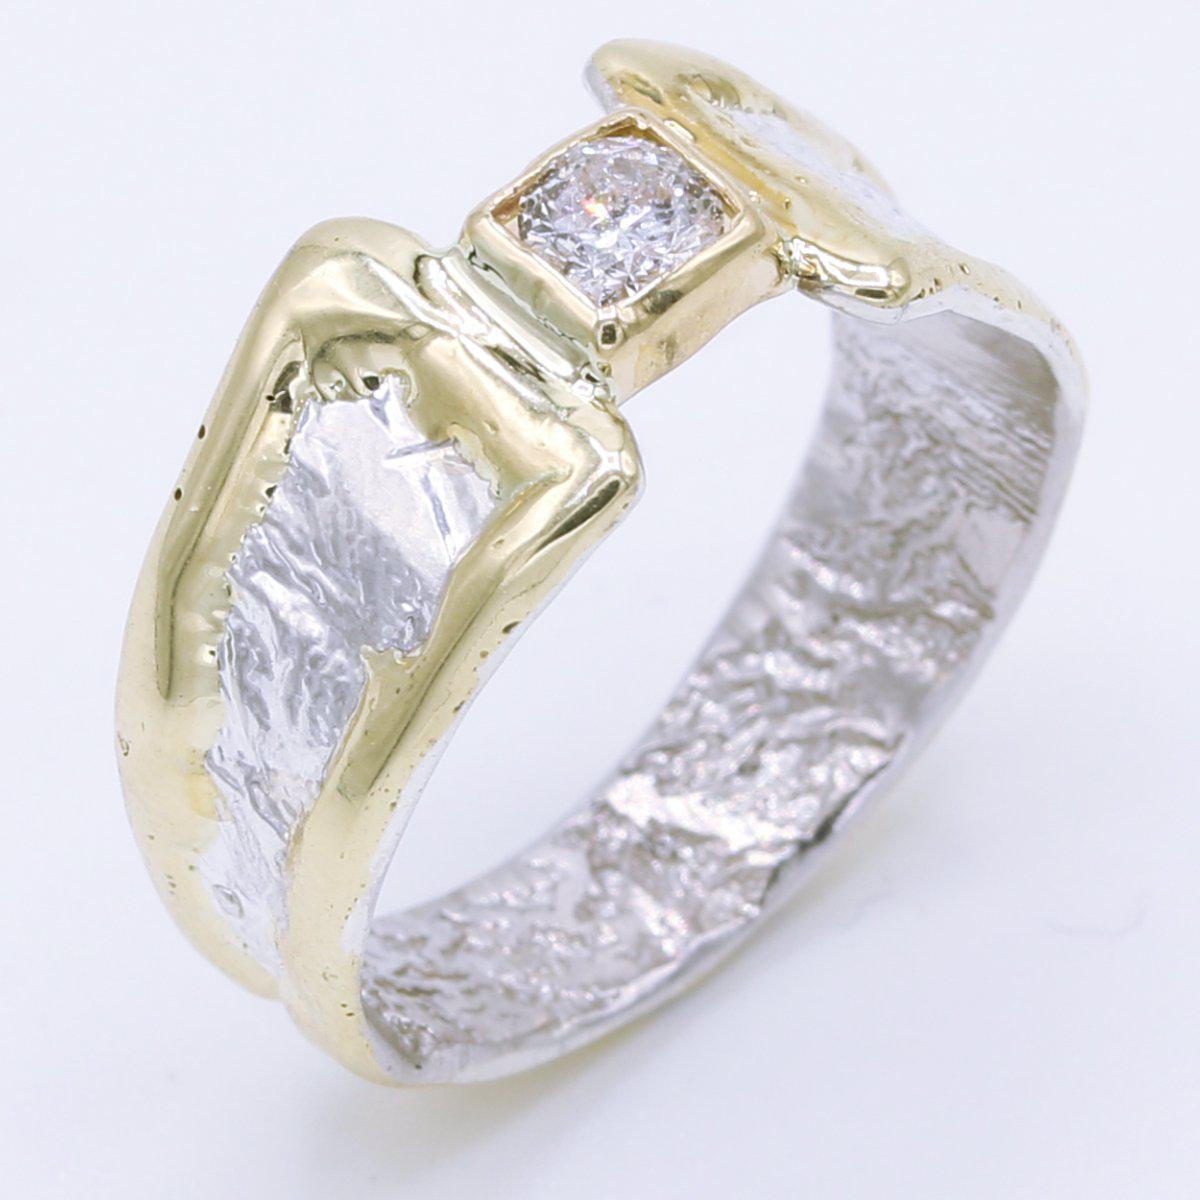 14K Gold & Crystalline Silver Diamond Ring - 34895